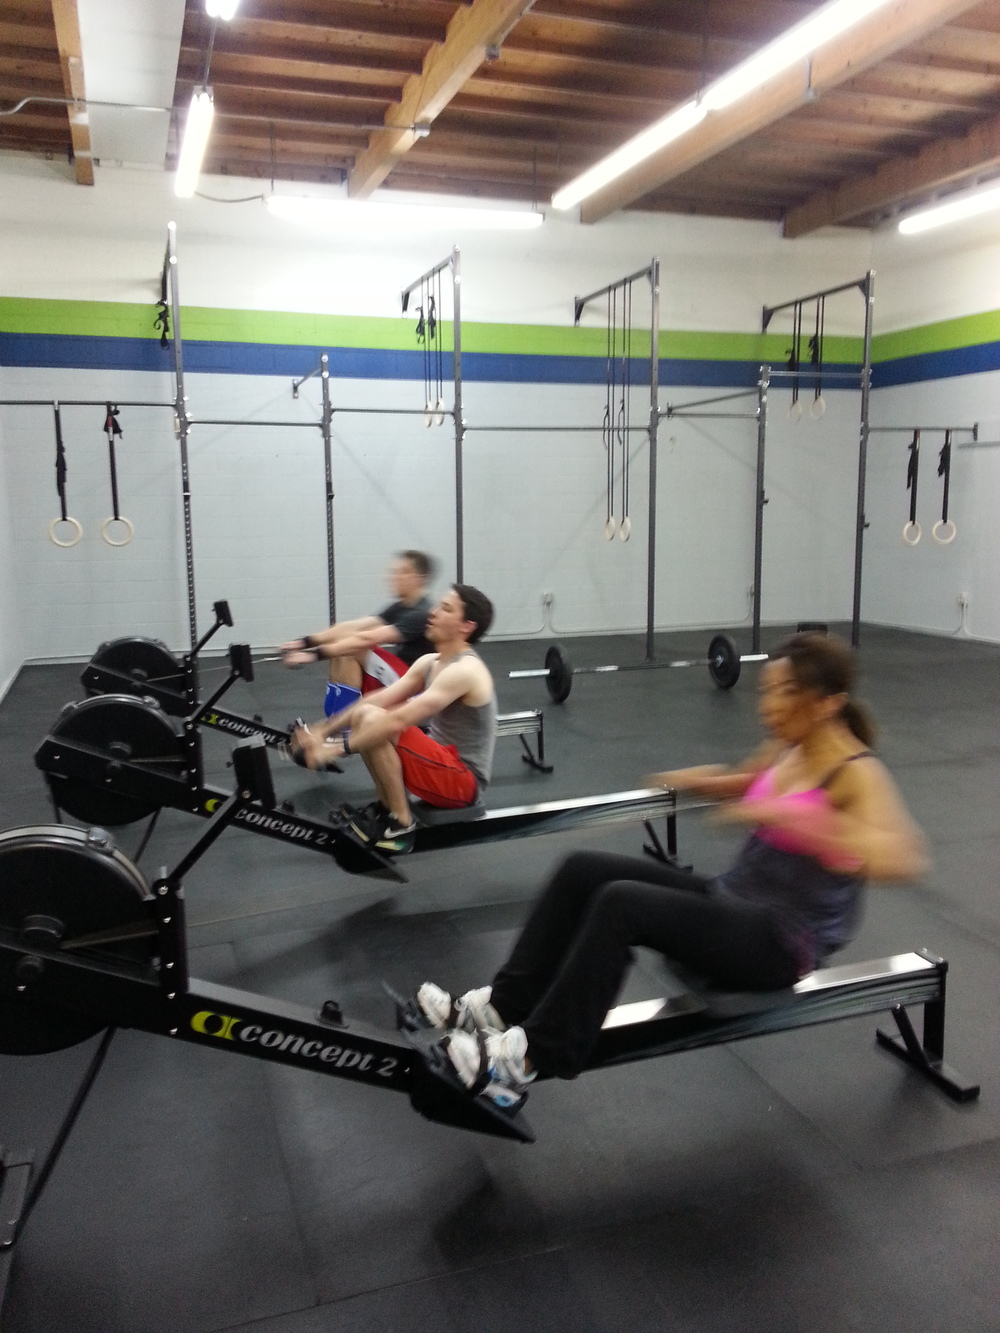 Our 5:00 class pushing hard on that row.